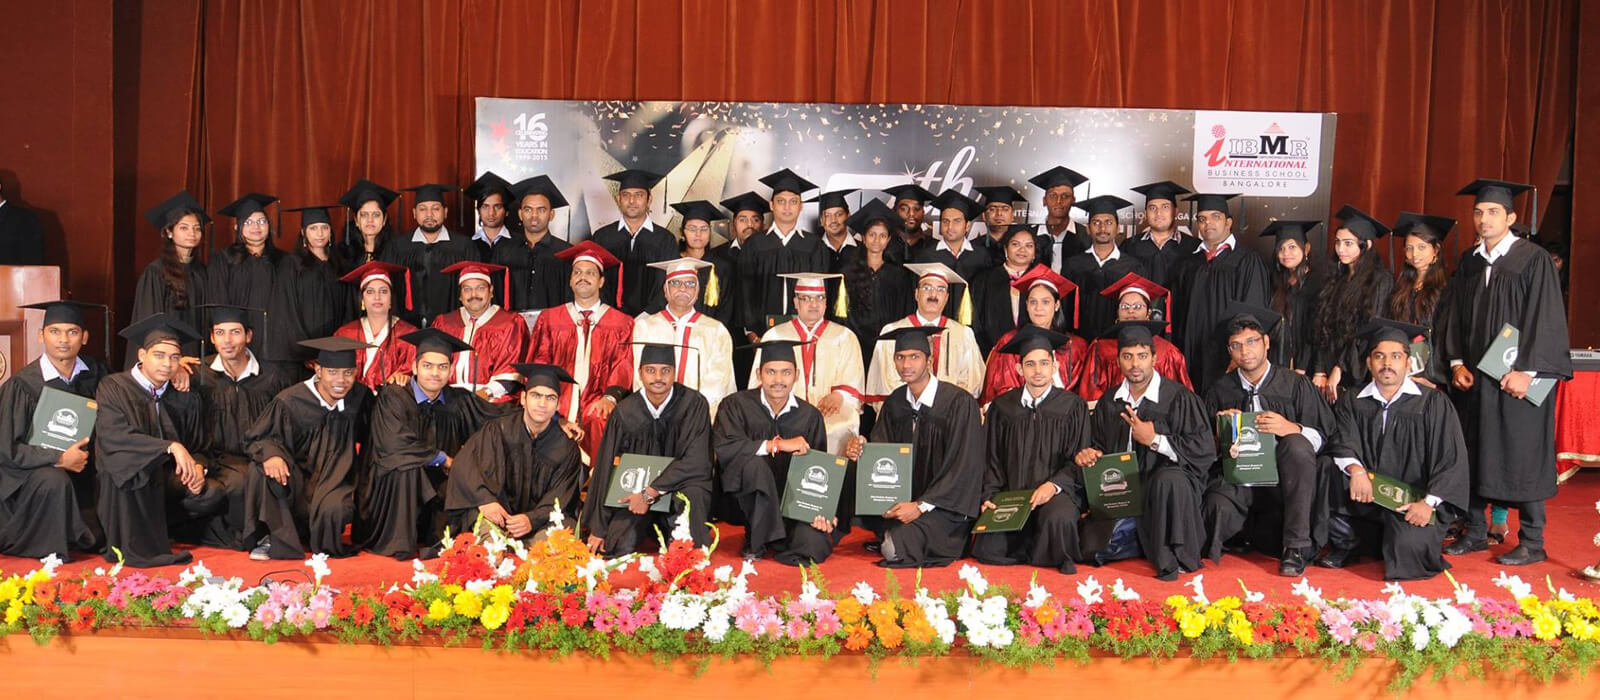 IBMR- Convocation